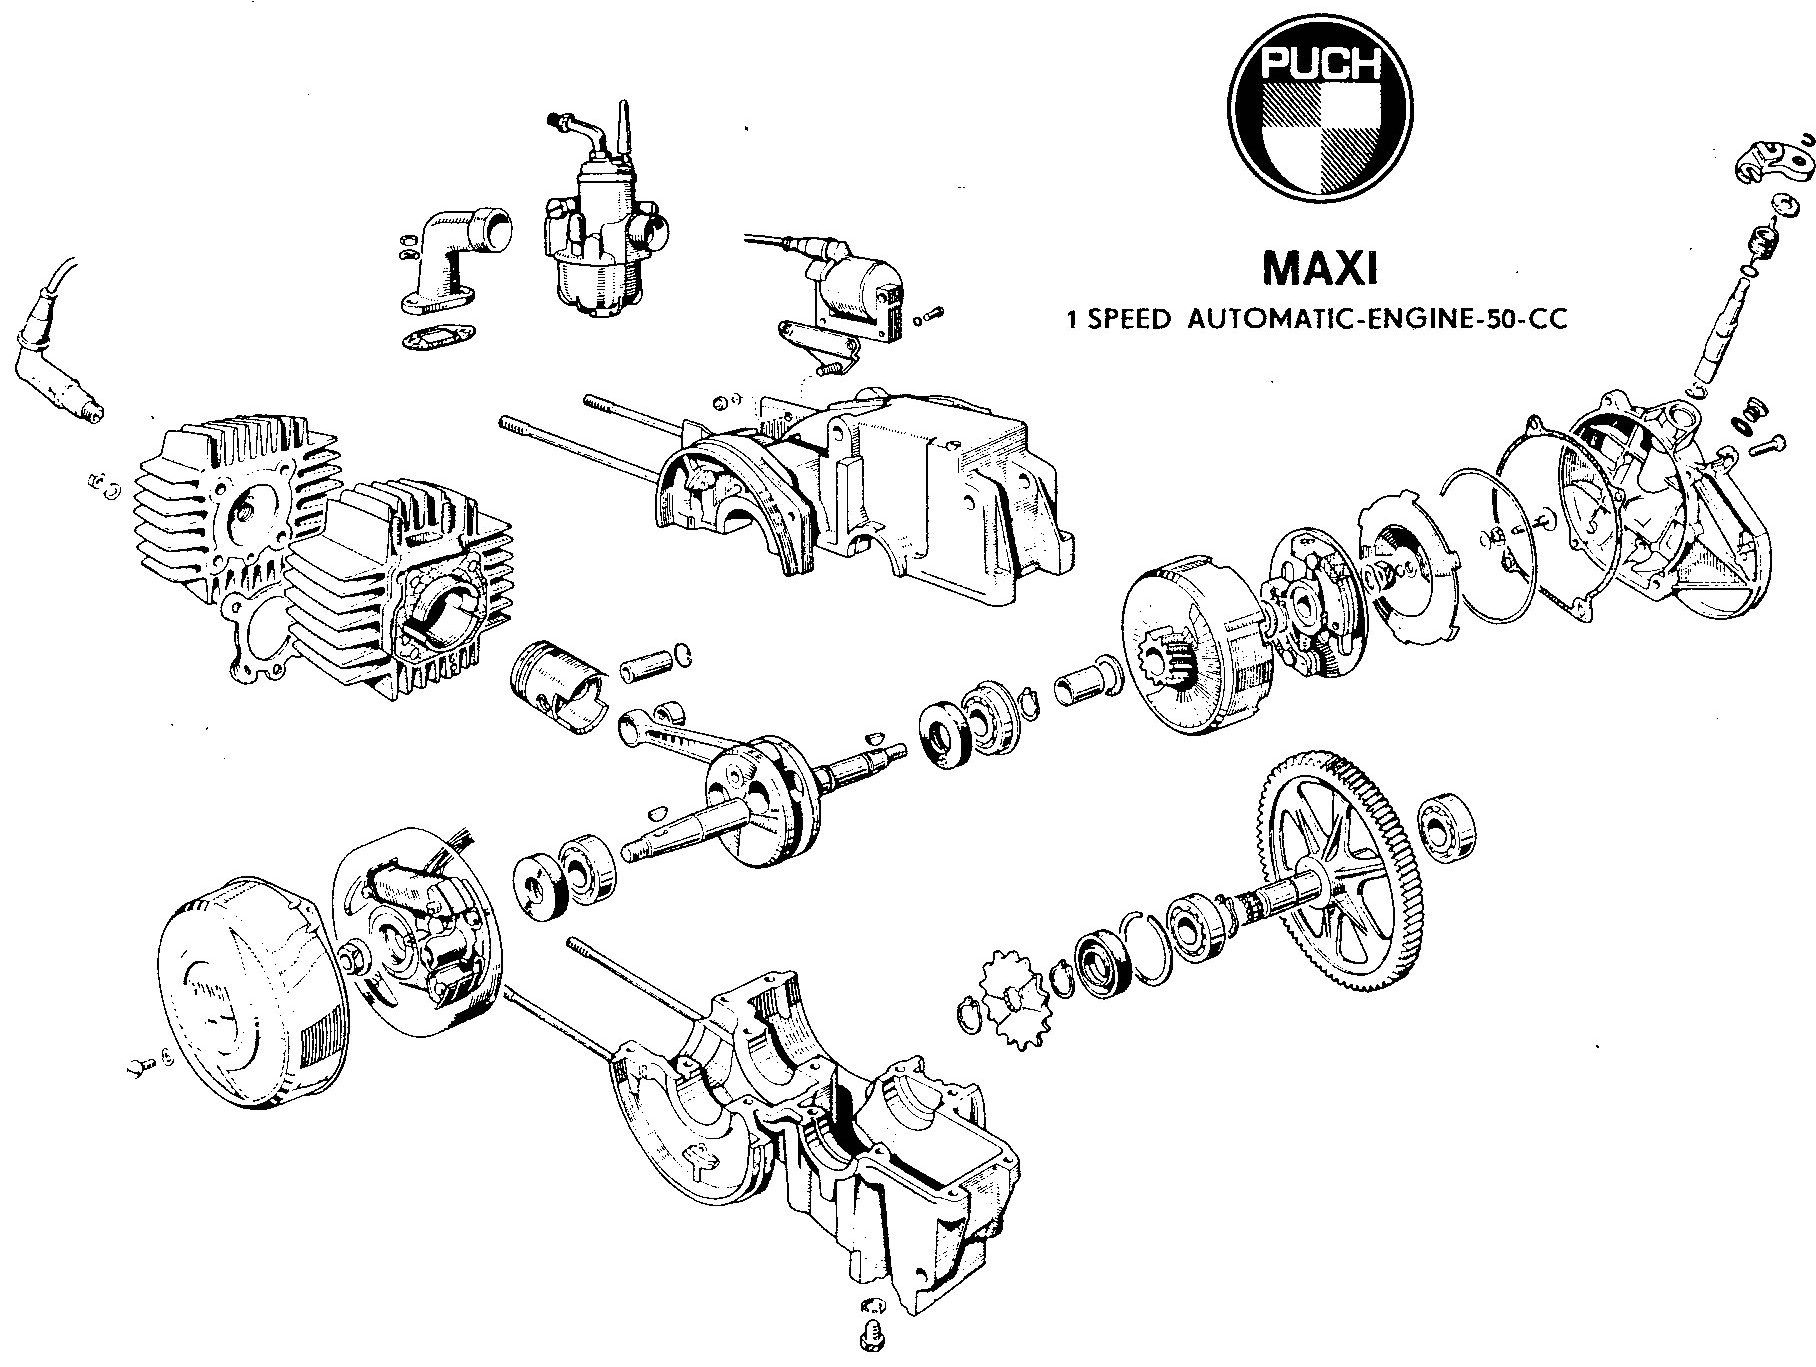 Handy diagram of the E50 Puch engine. Exploded View, Motorcycle Engine,  Wasp,